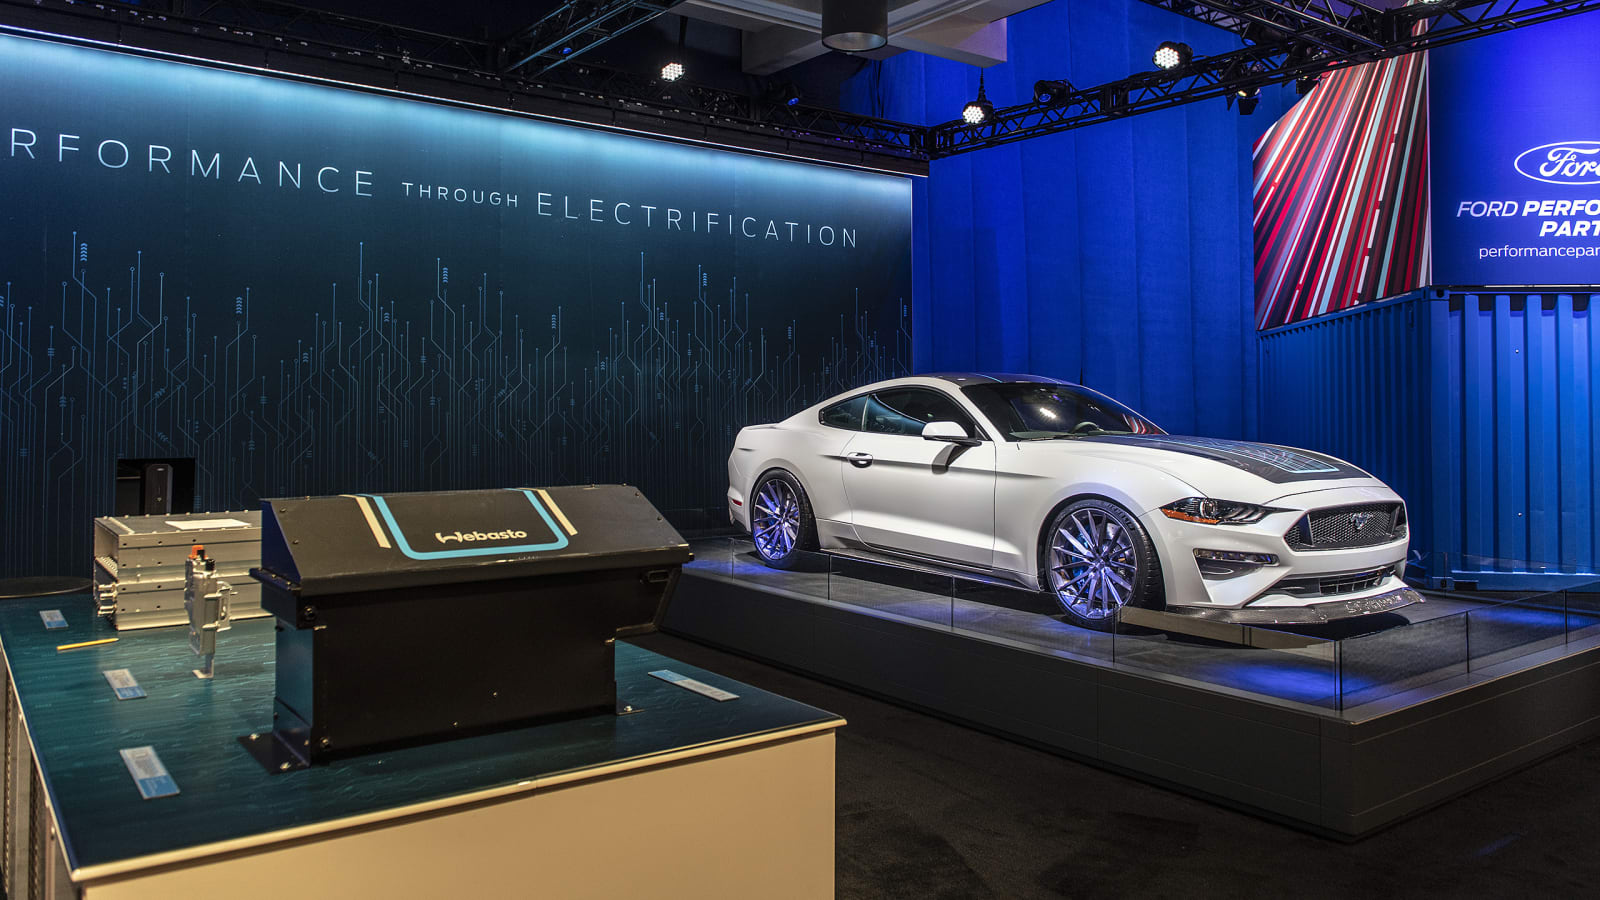 Ford Webasto Lithium Mustang EV: Three interesting facts we learned